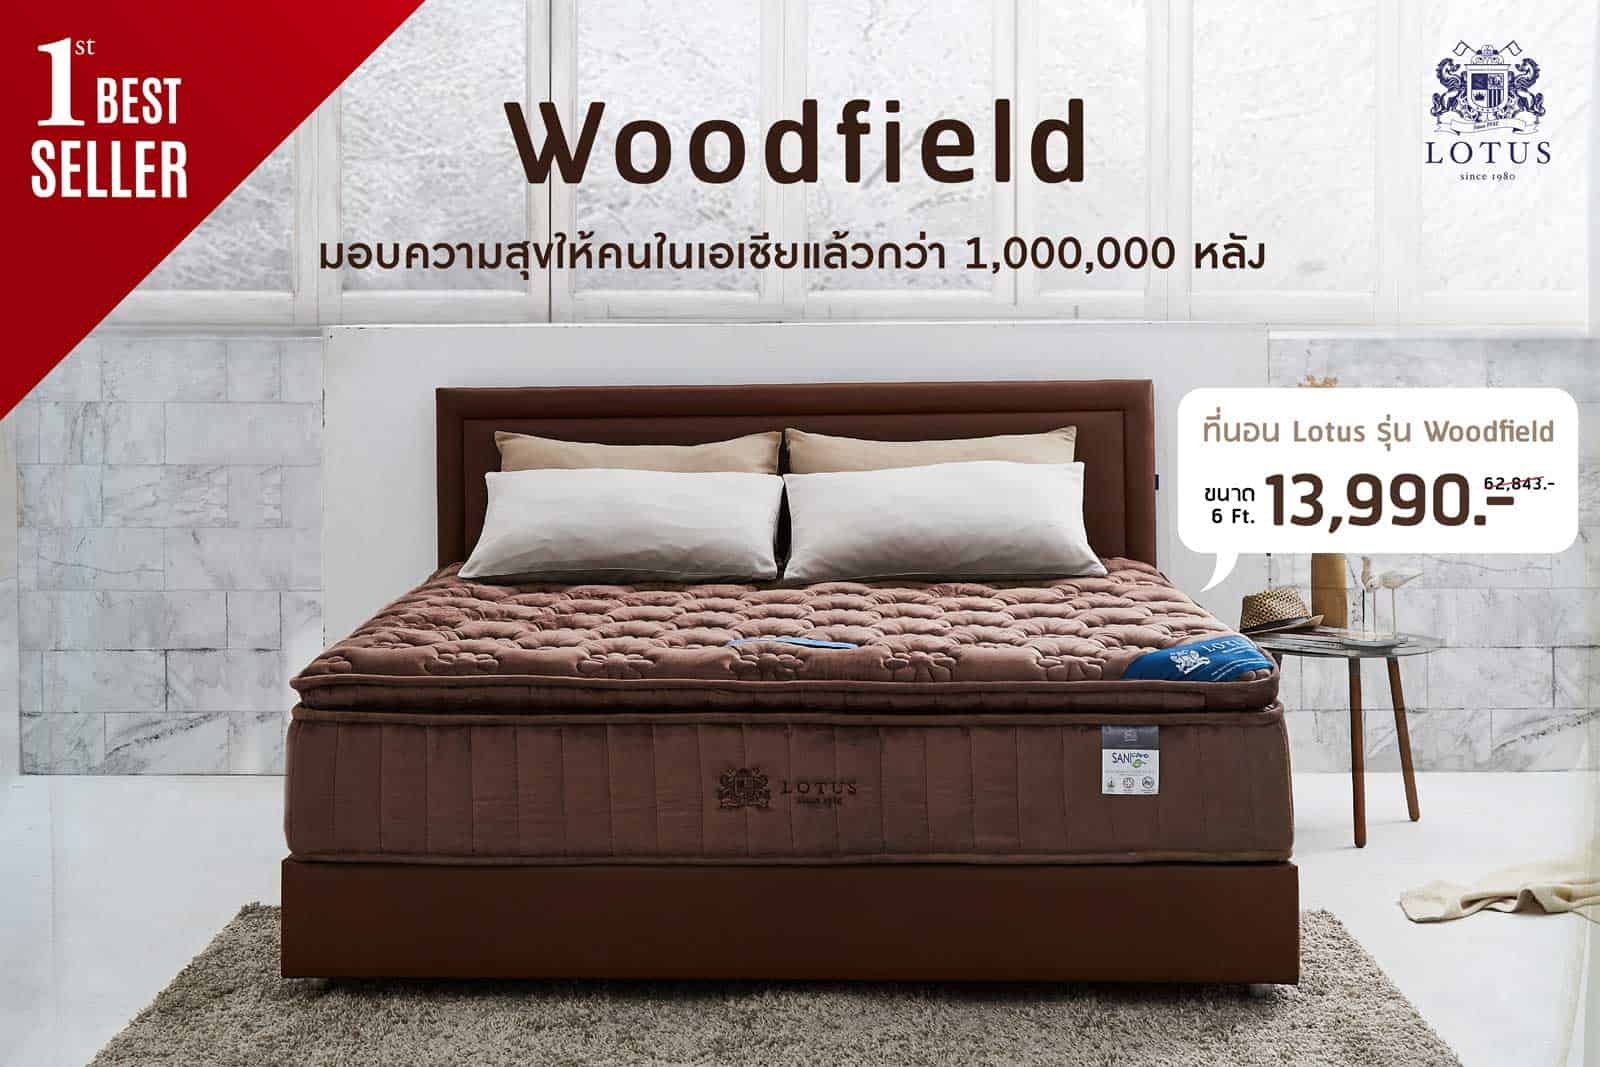 Lotus Mattress Woodfield with Bed Frame Lucia 25